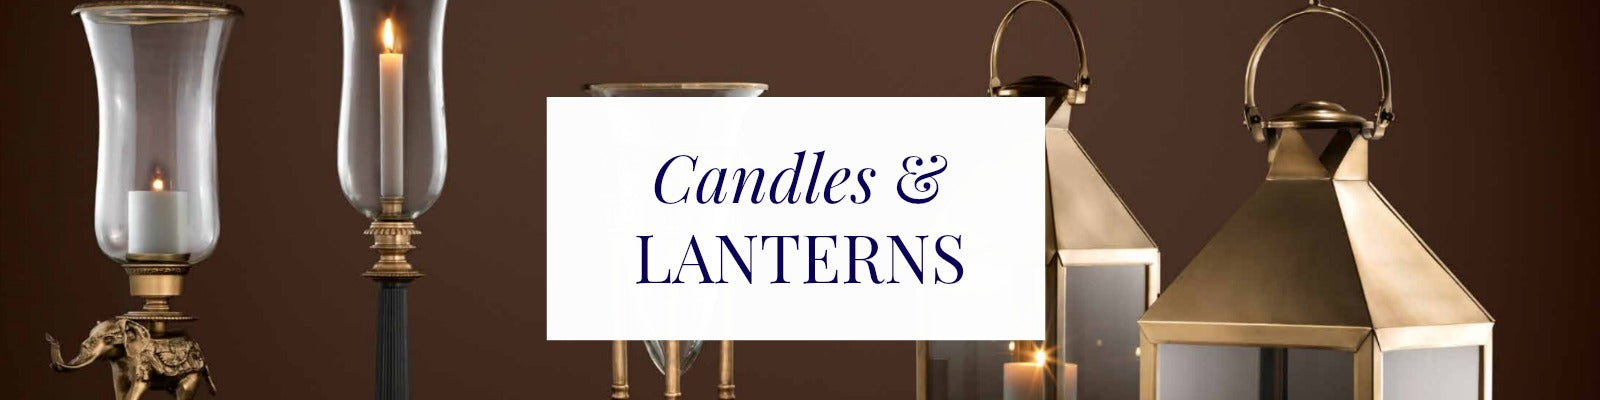 Candles | Eichholtz Candles | OROA - Affordable Luxury Furniture Online